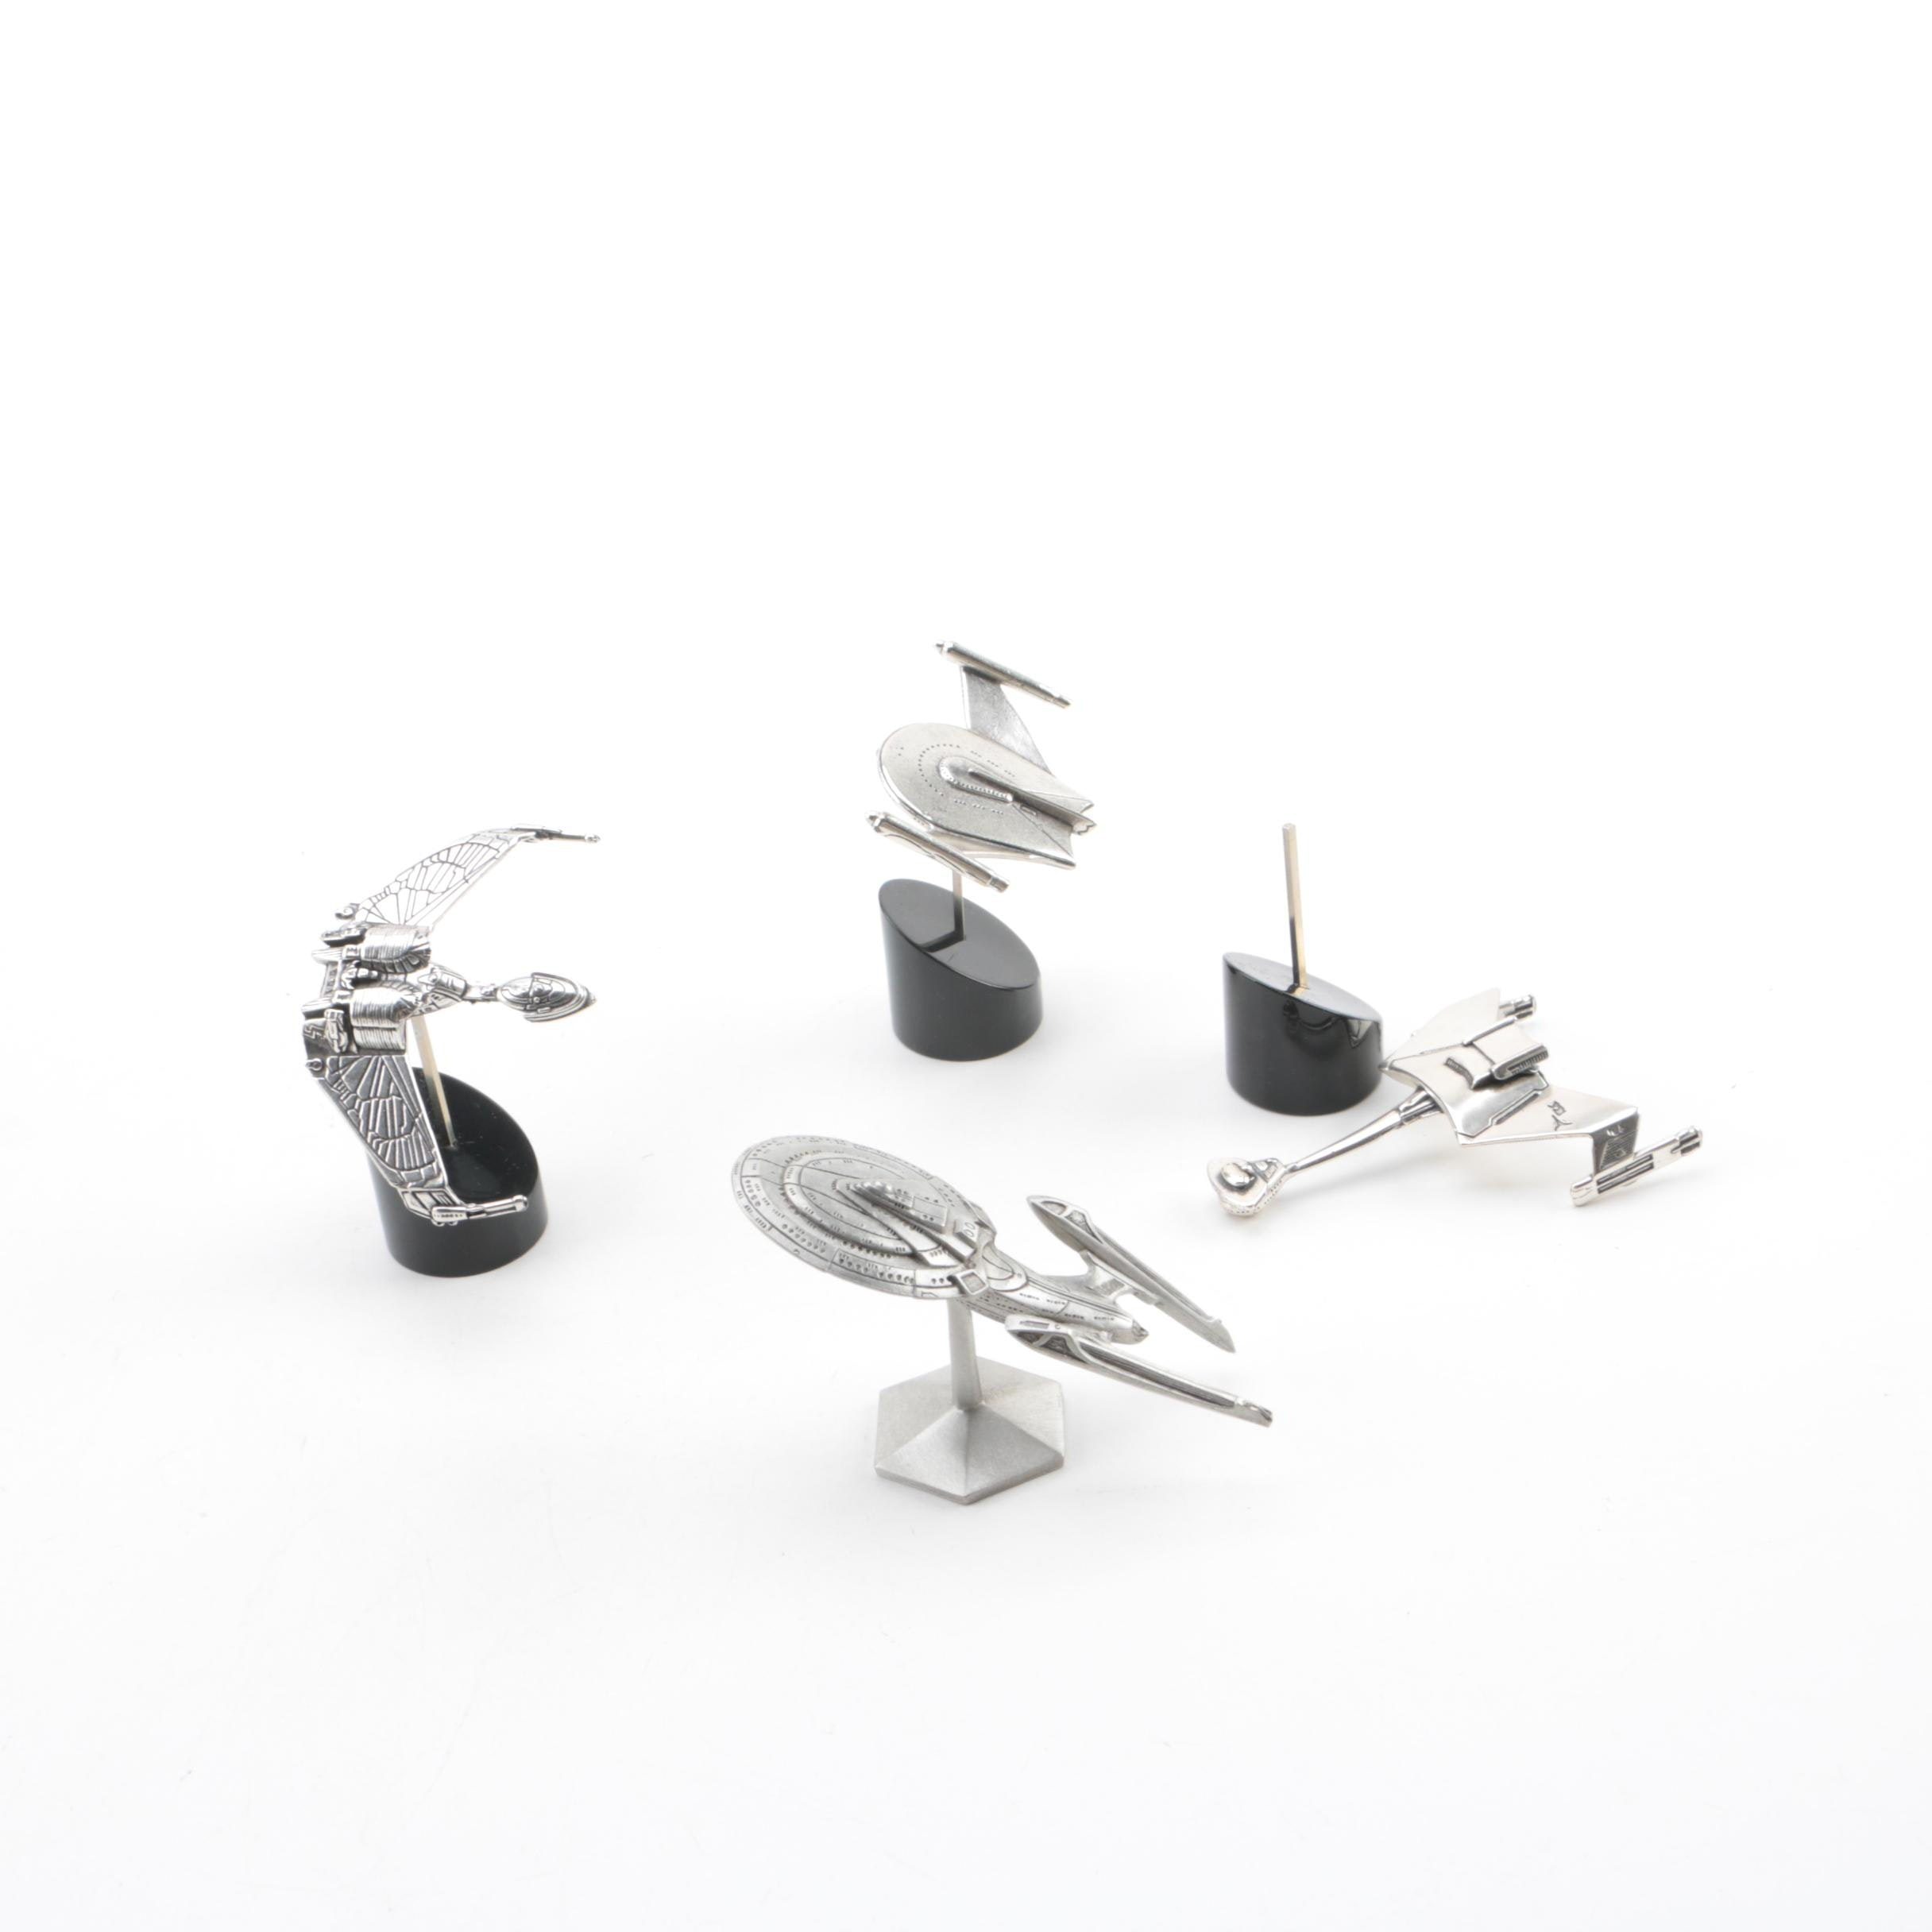 Sterling Silver and Pewter Model Star Trek Aircrafts